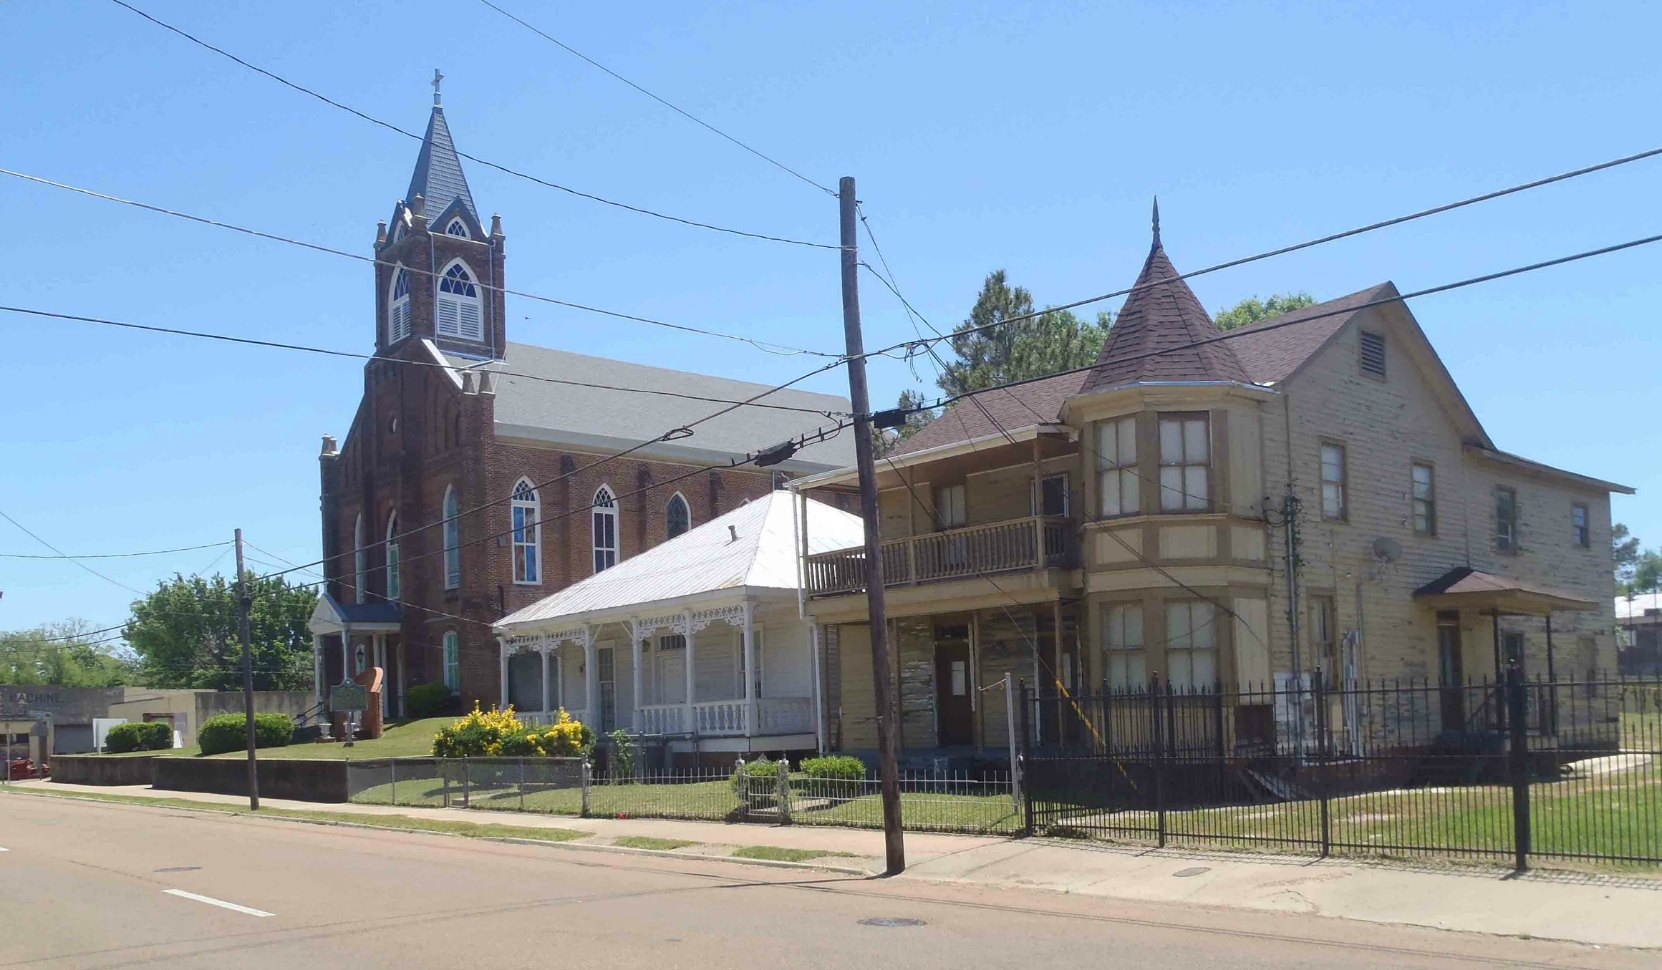 Holy Family Catholic Church, Natchez, Mississippi and some of the adjacent neighborhood houses.